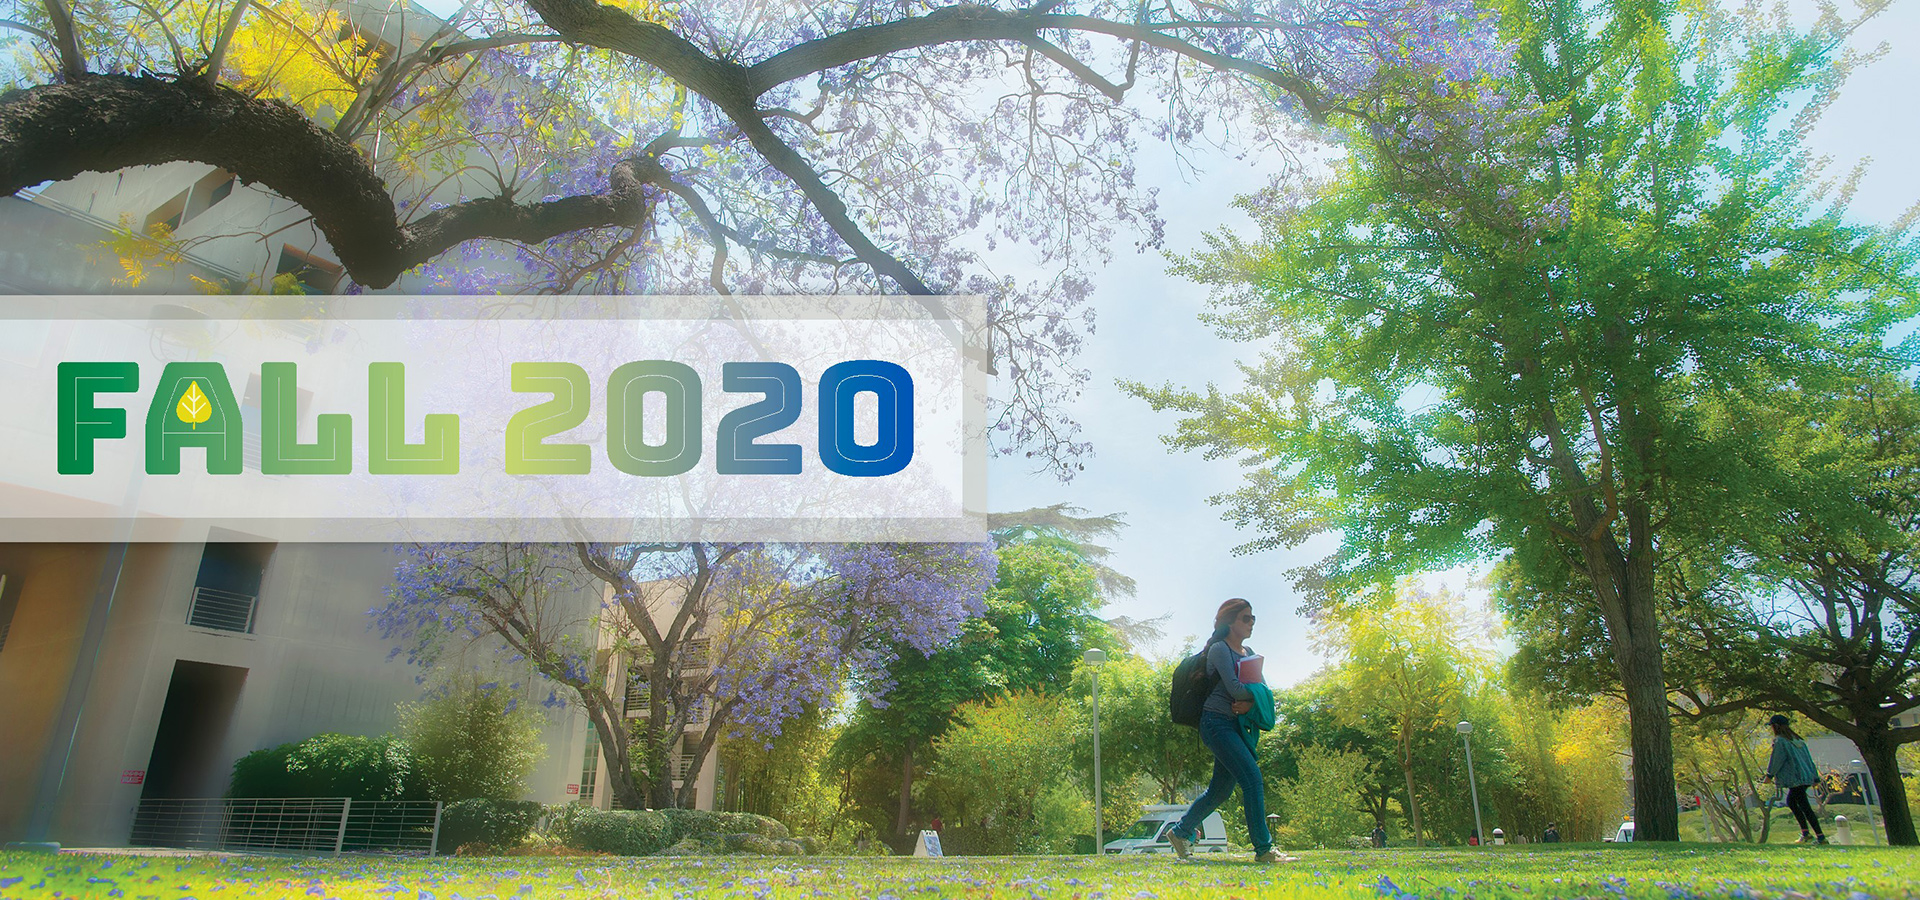 Student walks on campus with text designed to say Fall 2020